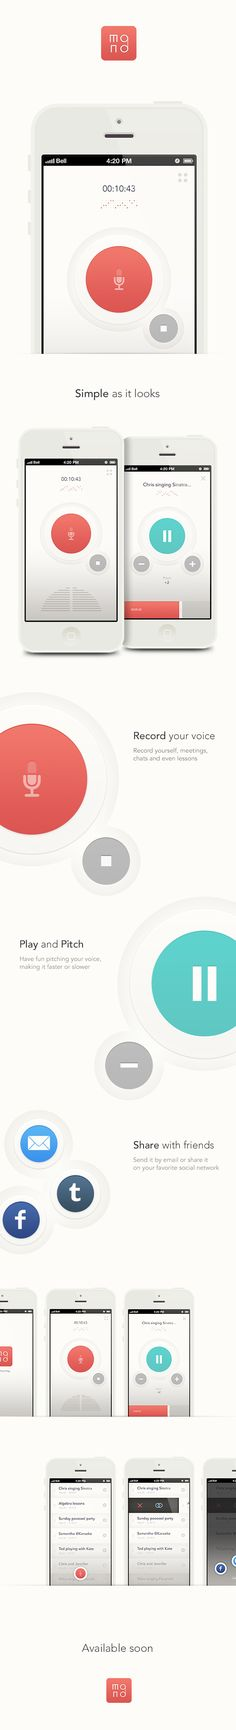 MONO iPhone app by Franco Roncoroni and Steve Buffoni, via Behance